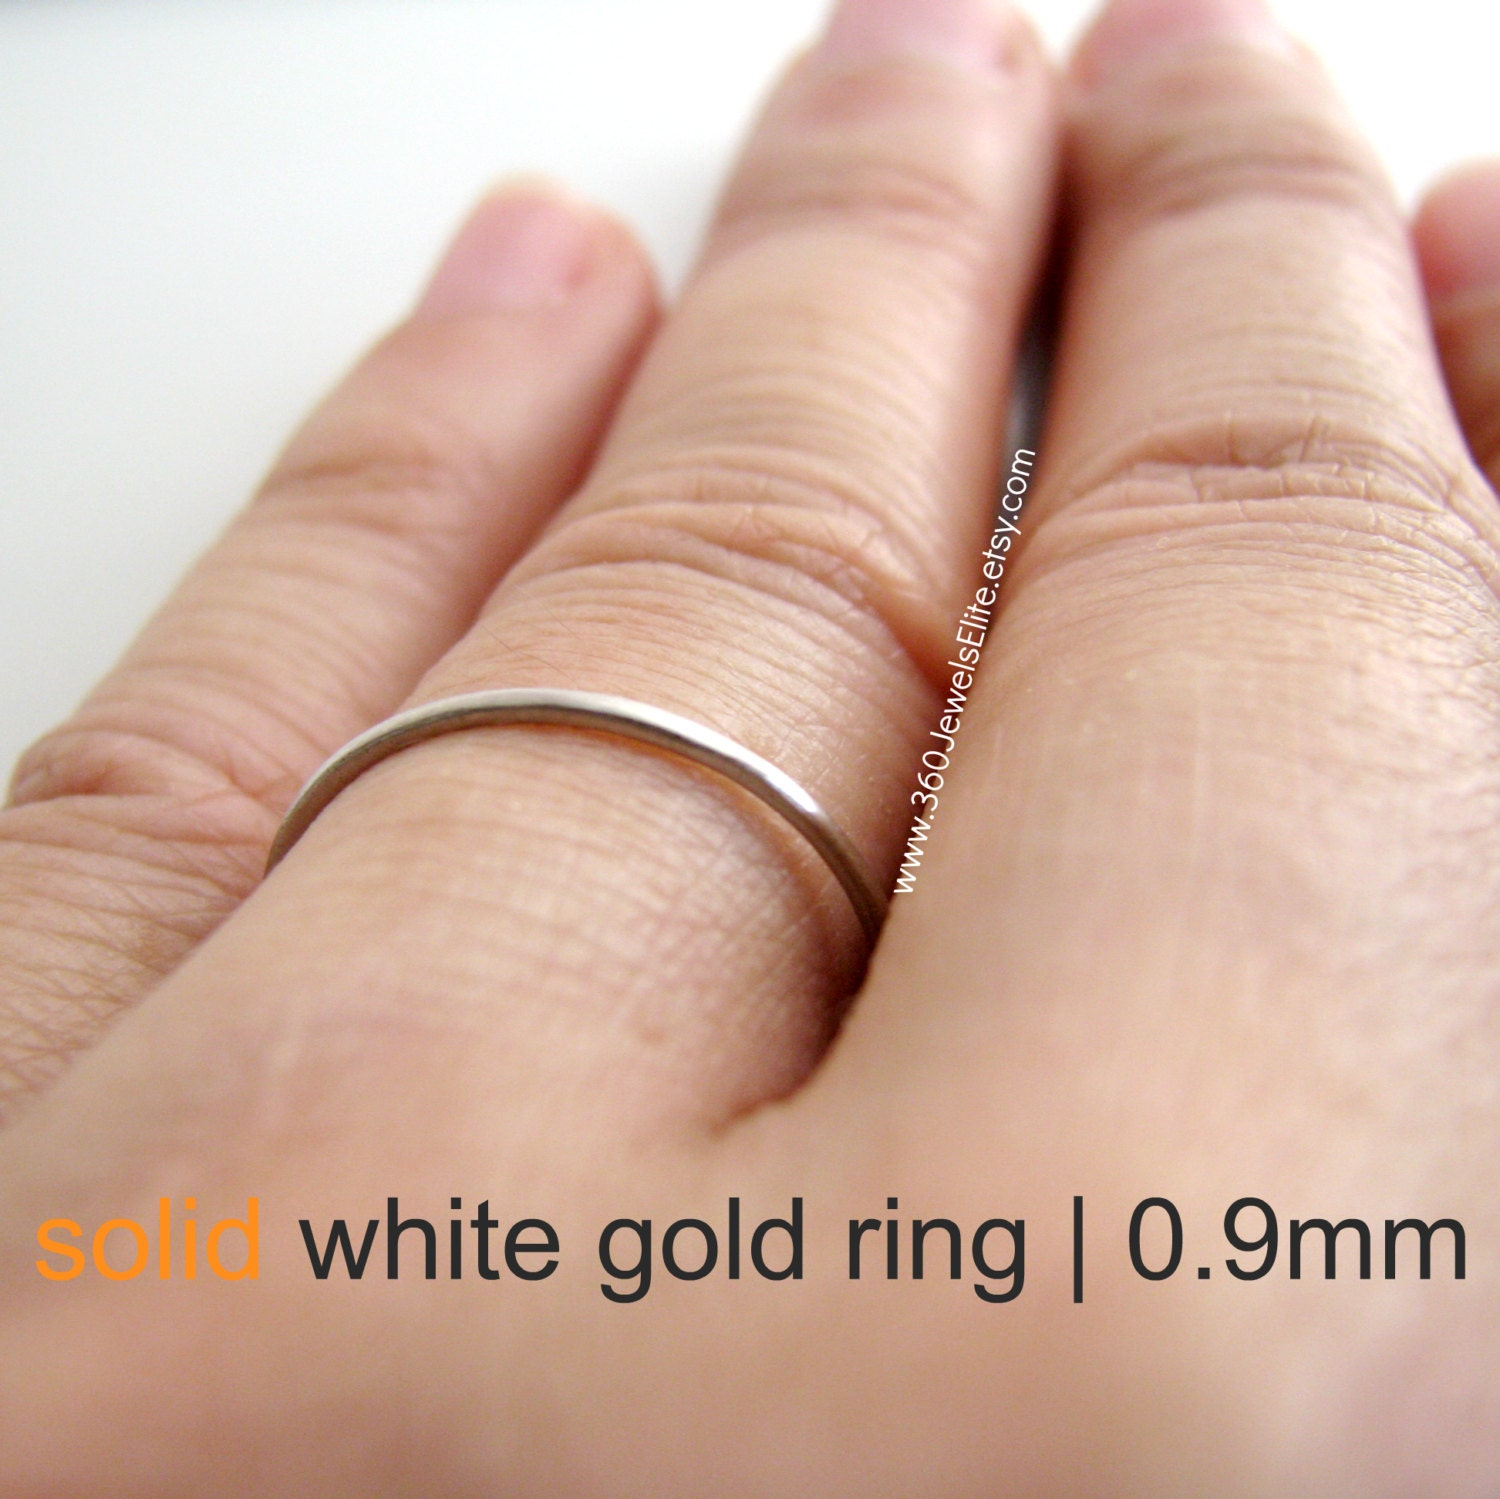 Solid white gold ring spacer or ring guard thin gold ring